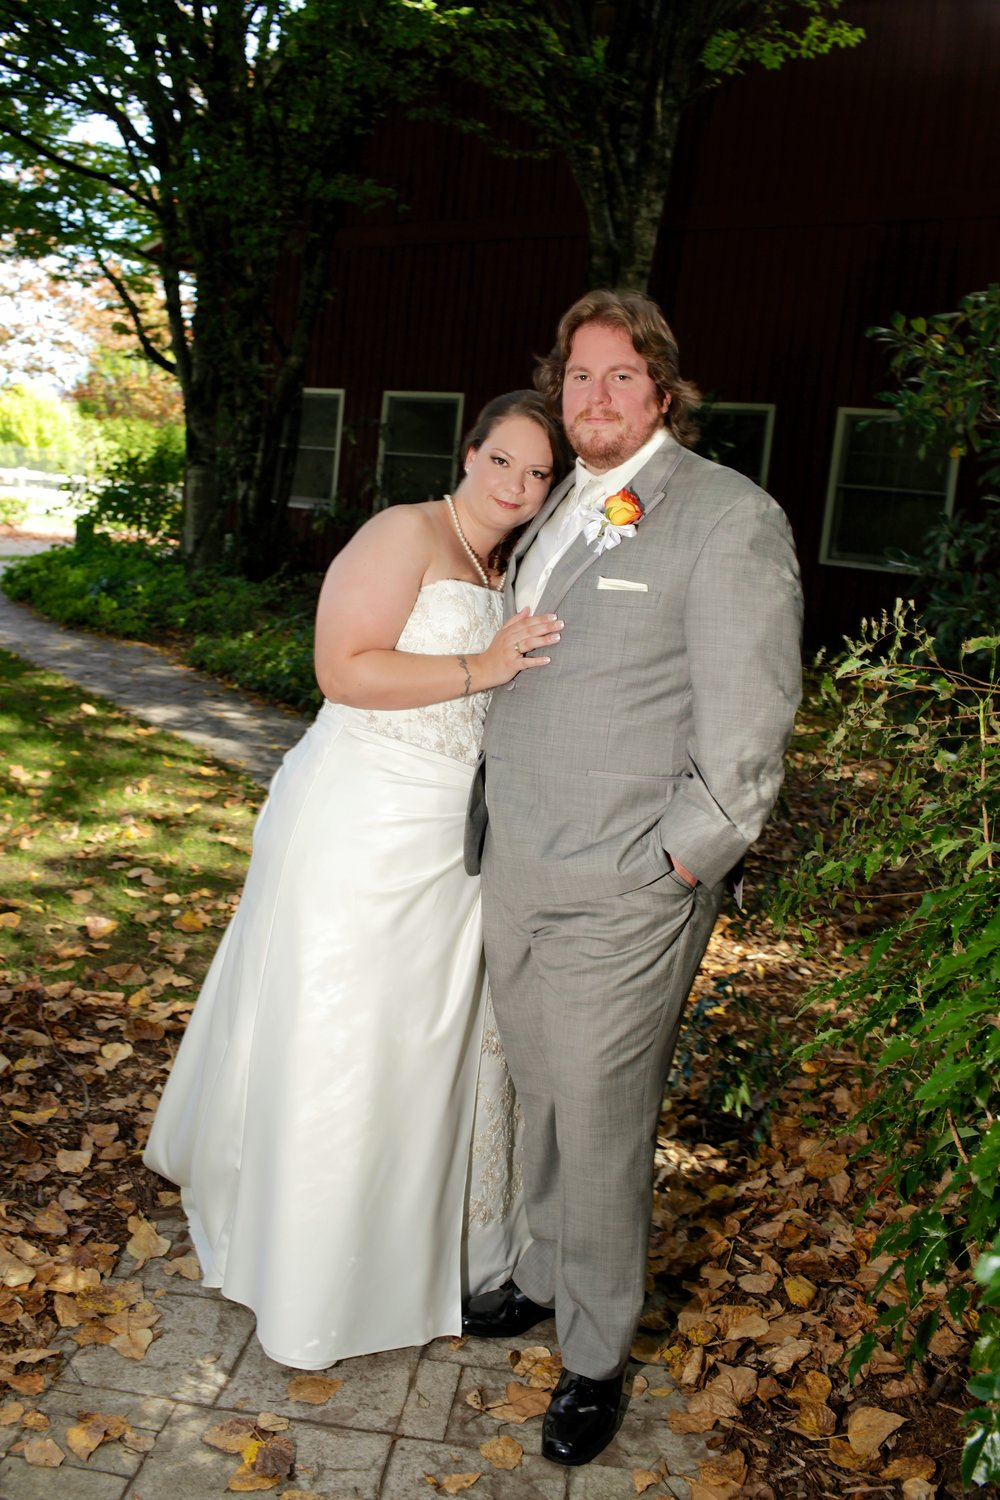 Kielty_Wedding156.jpg